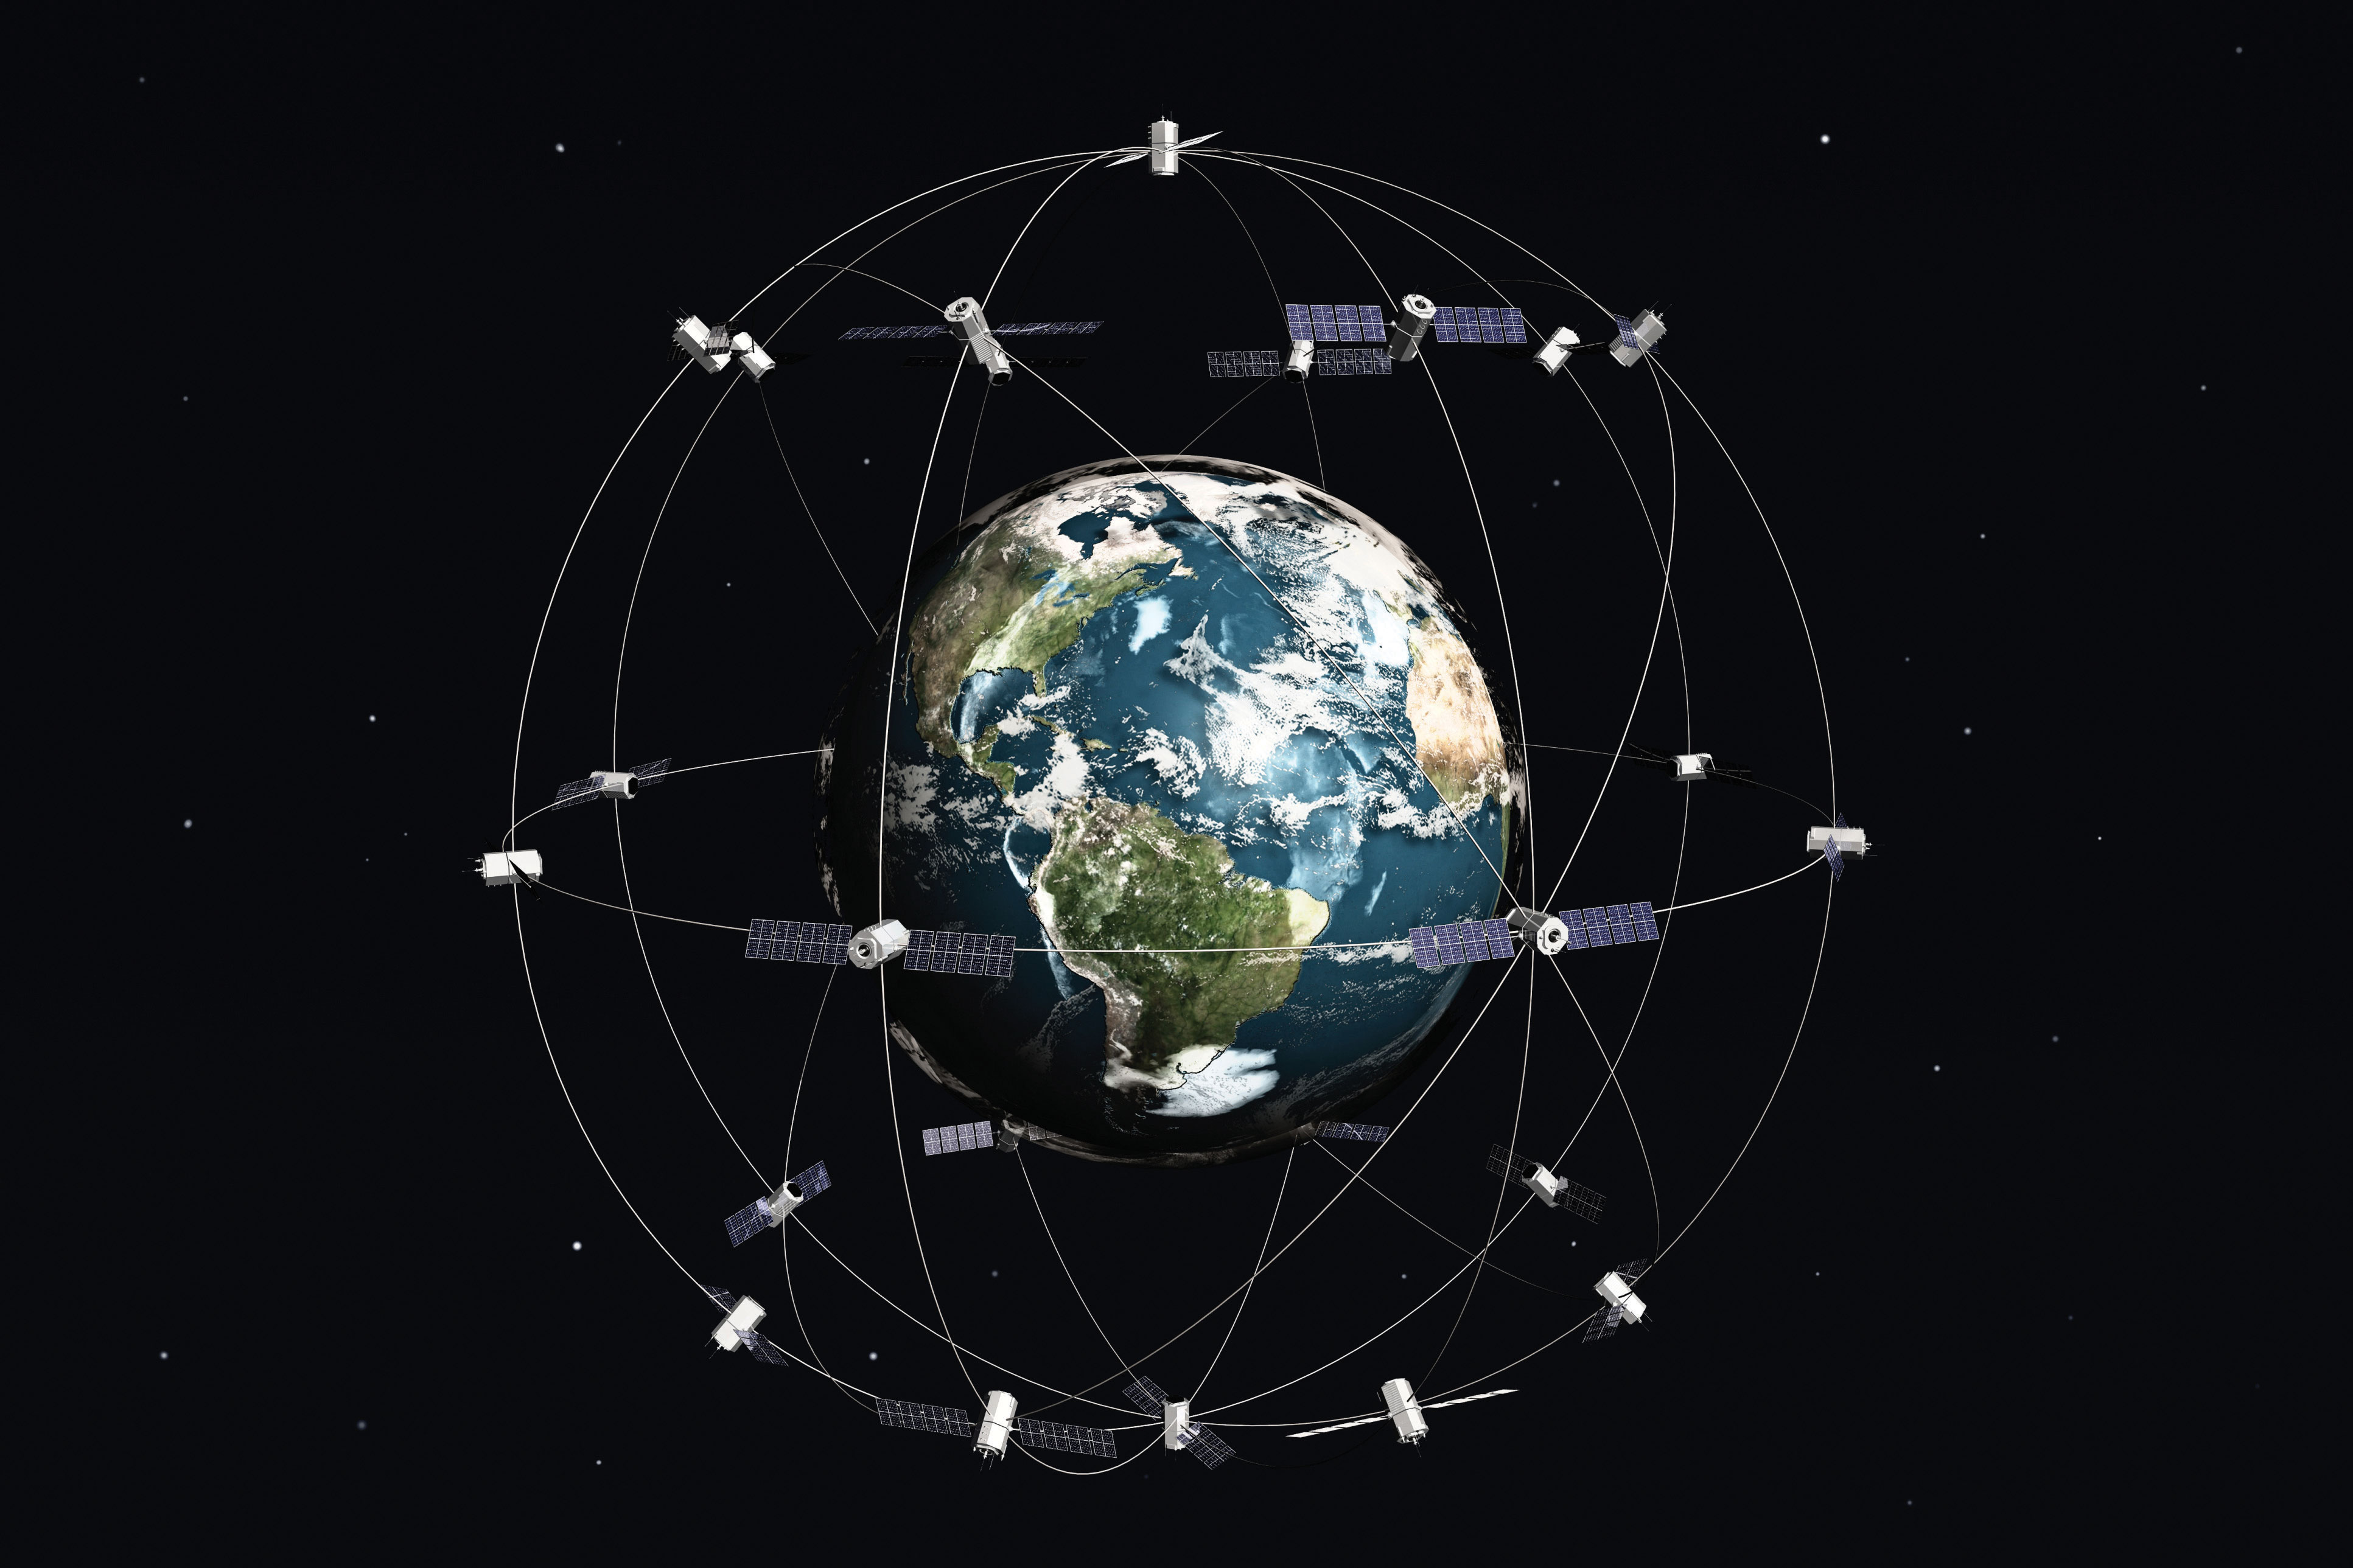 an analysis of geosychronous orbits and geostationary orbits Applying eccentricity to a geosynchronous orbit produces both longitudinal  in  this paper, we analyze the requirements for putting a spacecraft in a patrol orbit.